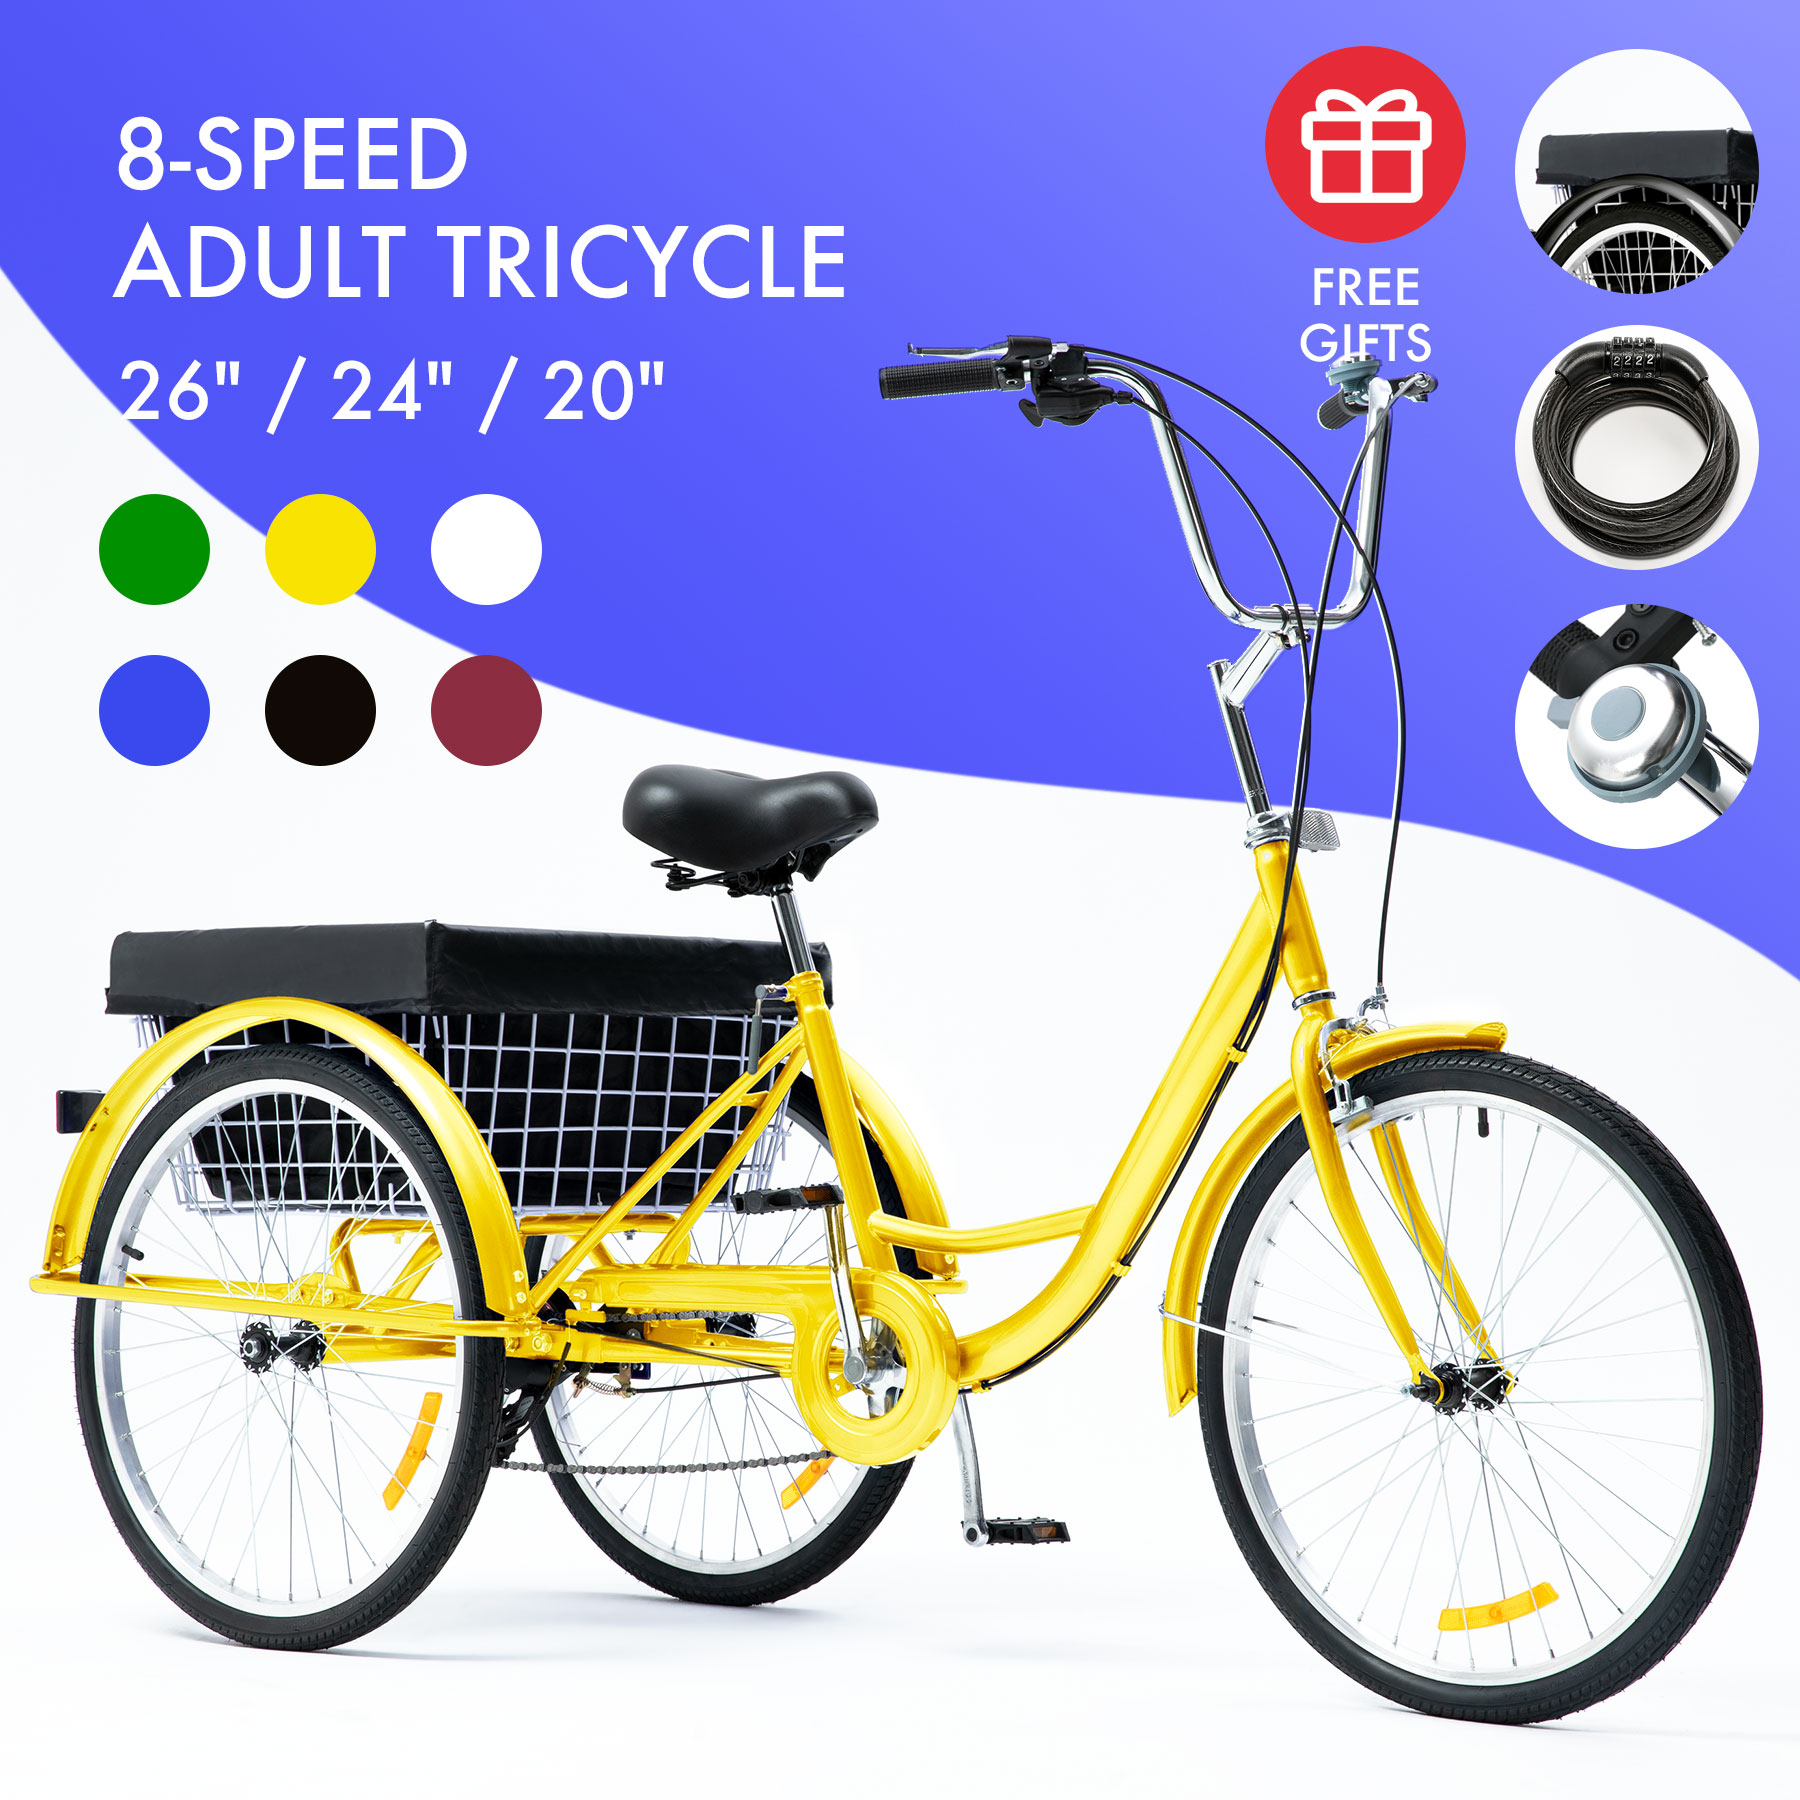 """Details about  /Adult Tricycle 26/"""" Wheel 7 Speed 3 Wheels White Bicycle Trike Cruiser w// Basket"""